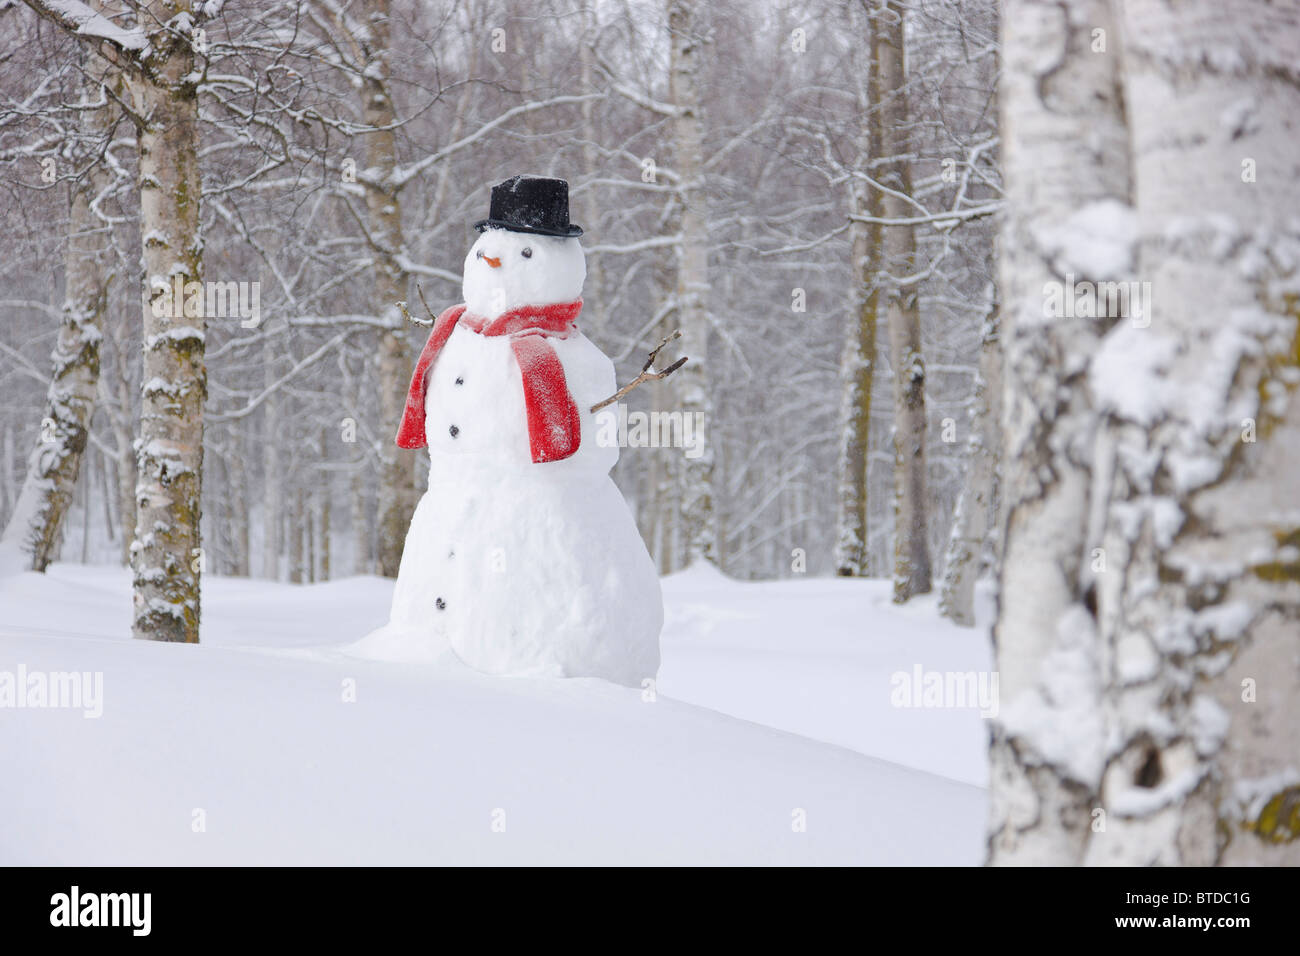 Snowman standing in a snow covered birch forest, Anchorage, Alaska, Winter - Stock Image